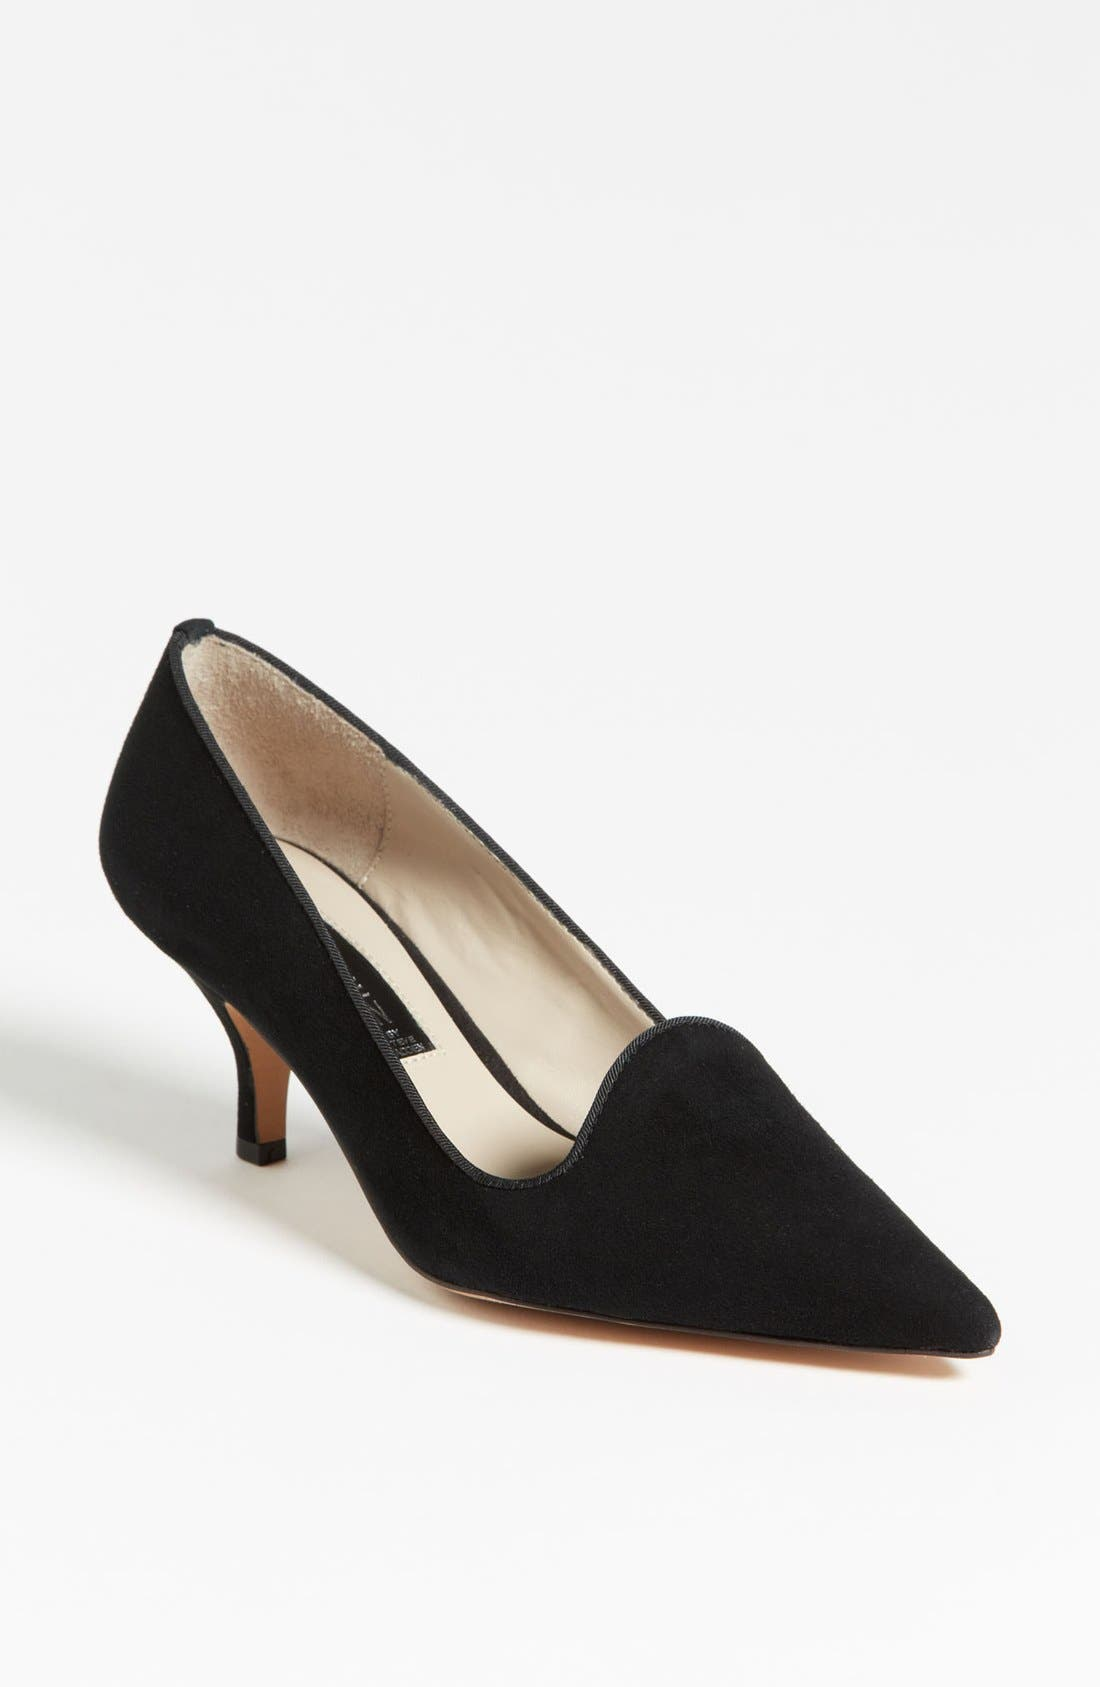 Main Image - Steven by Steve Madden 'Corry' Pump